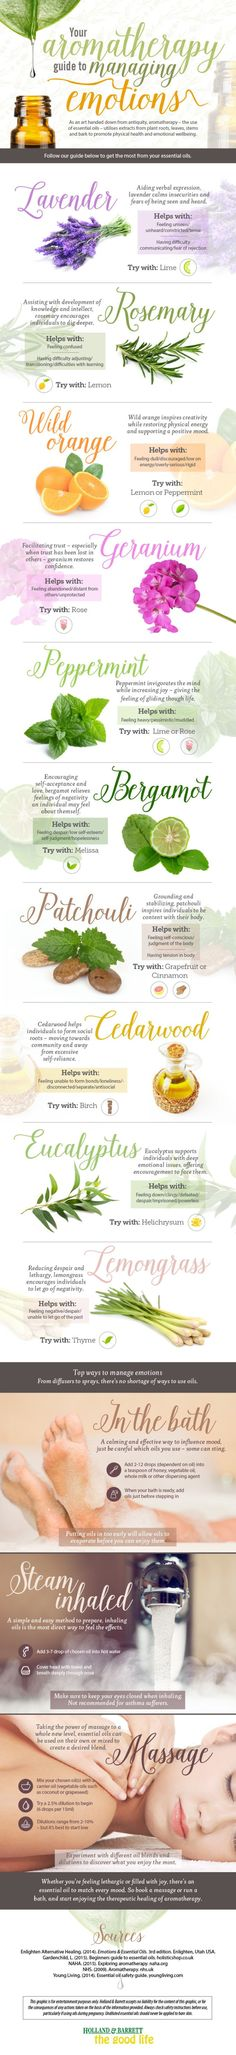 Use Aromatherapy To Create Emotional Bliss!